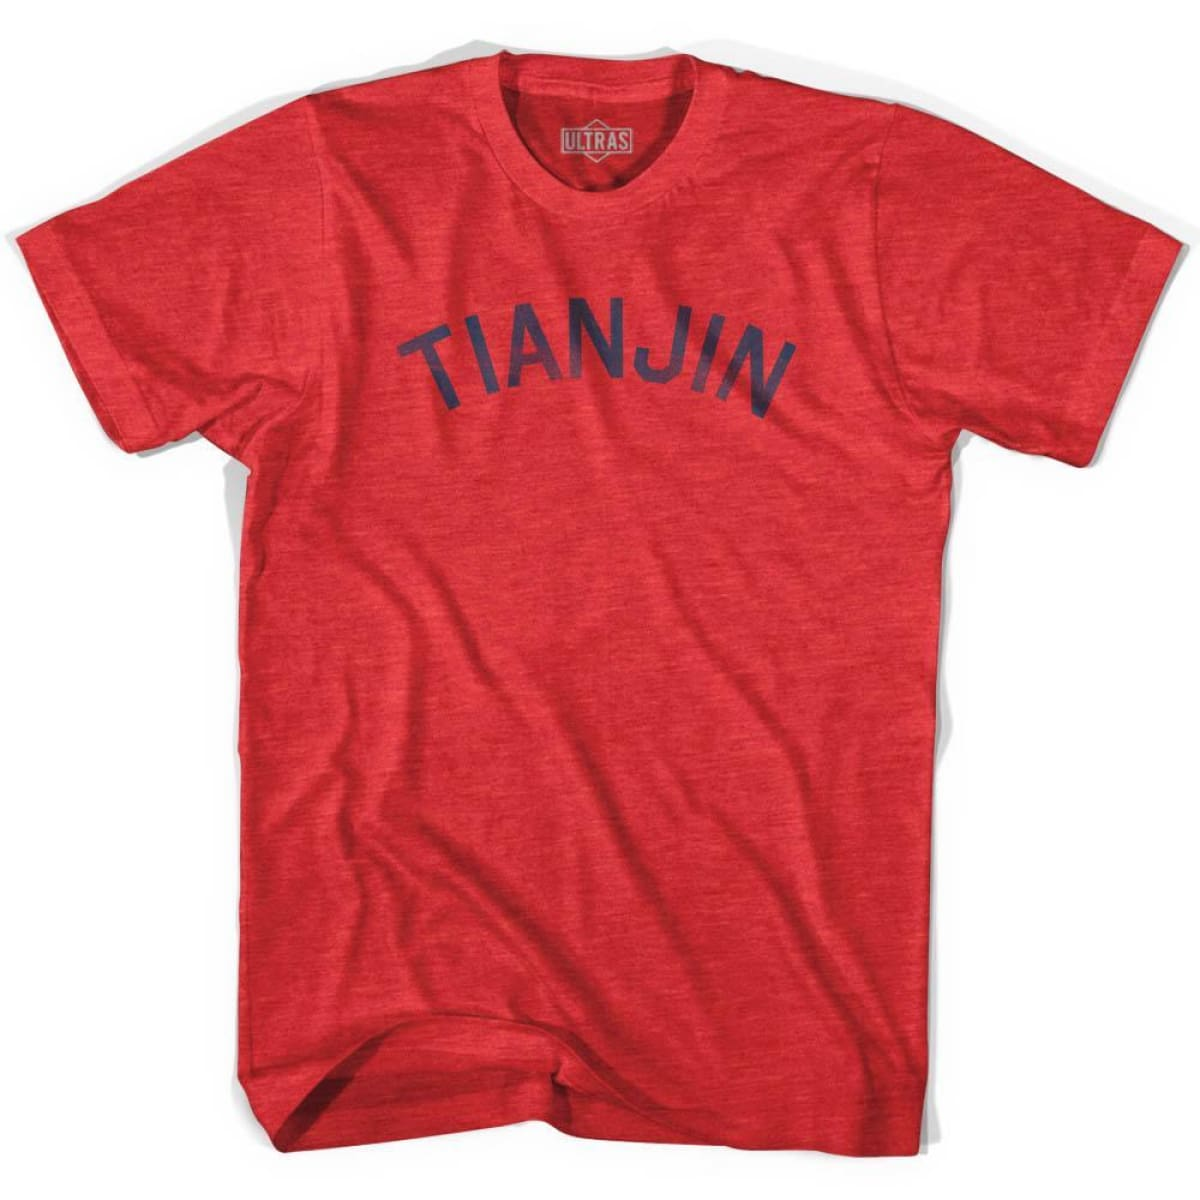 Tianjin Vintage City Adult Tri-Blend T-shirt - Heather Red / Adult Small - Asian Vintage City